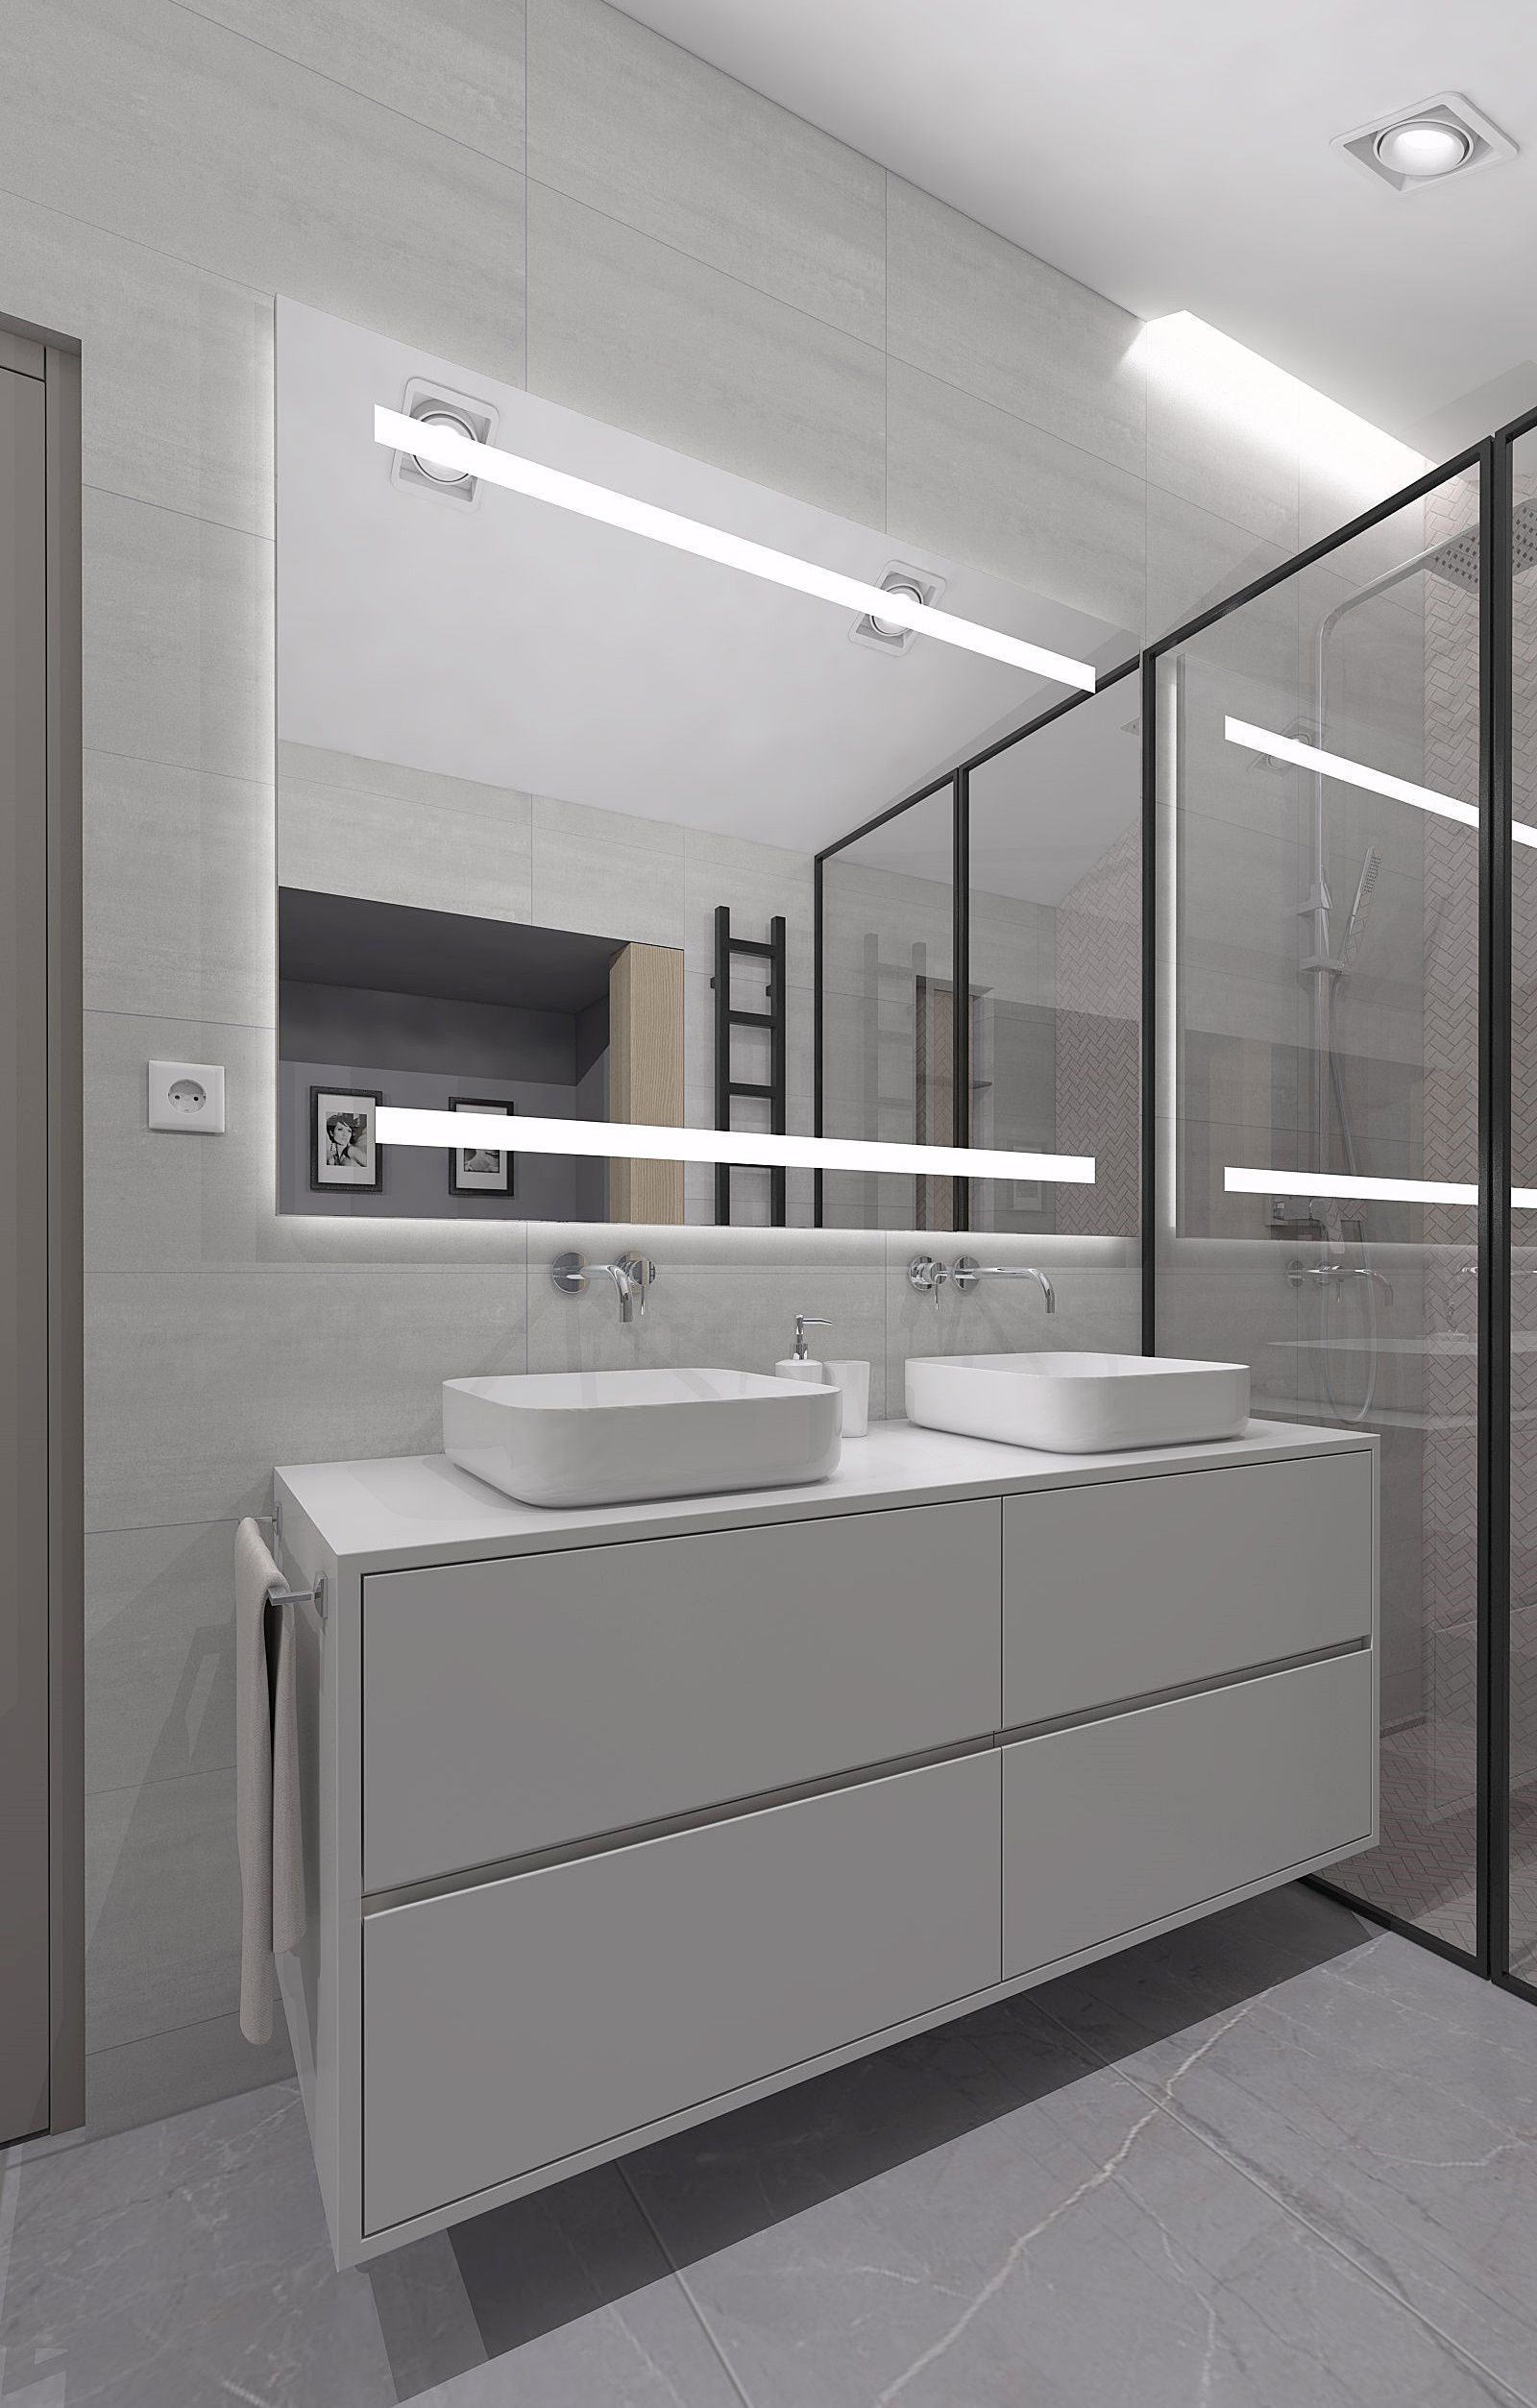 Amazing cozy shower room with pitched ceilings